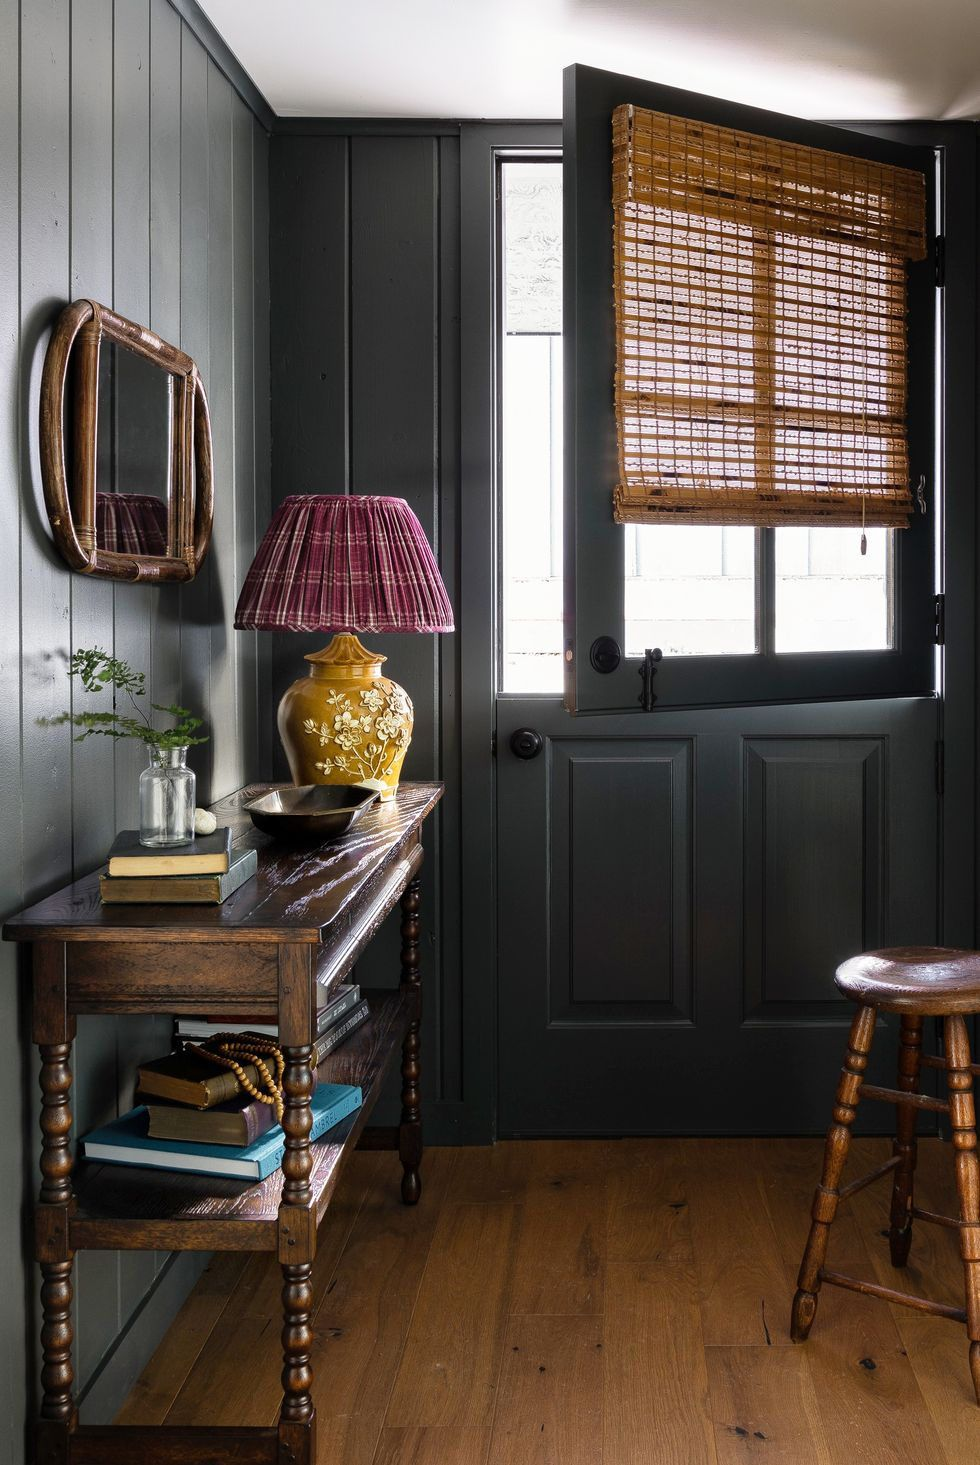 19 Stylish Rooms That Make A Strong Case For Rustic Design In 2020 Stylish Room Home Decor Rustic Room